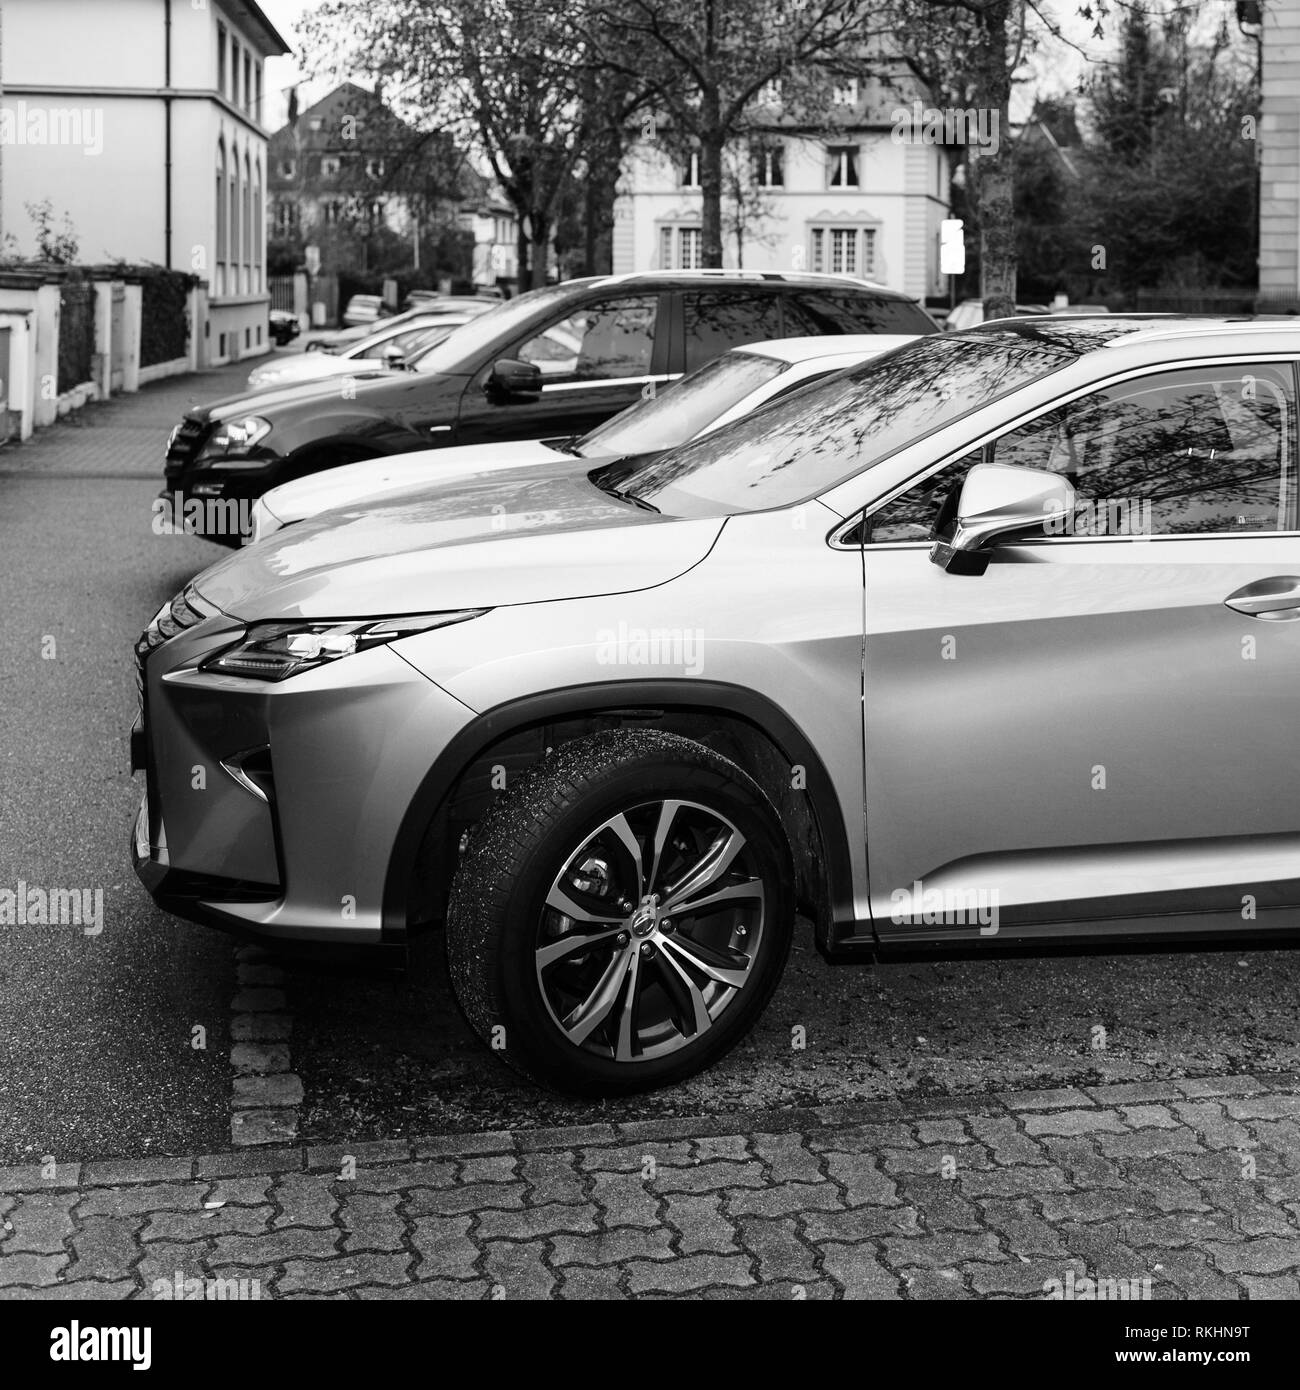 Paris, France - Jan 1, 2018: LEXUS RX 450h luxury silve SUV hybrid car parked on French street square iamge black and white - Stock Image